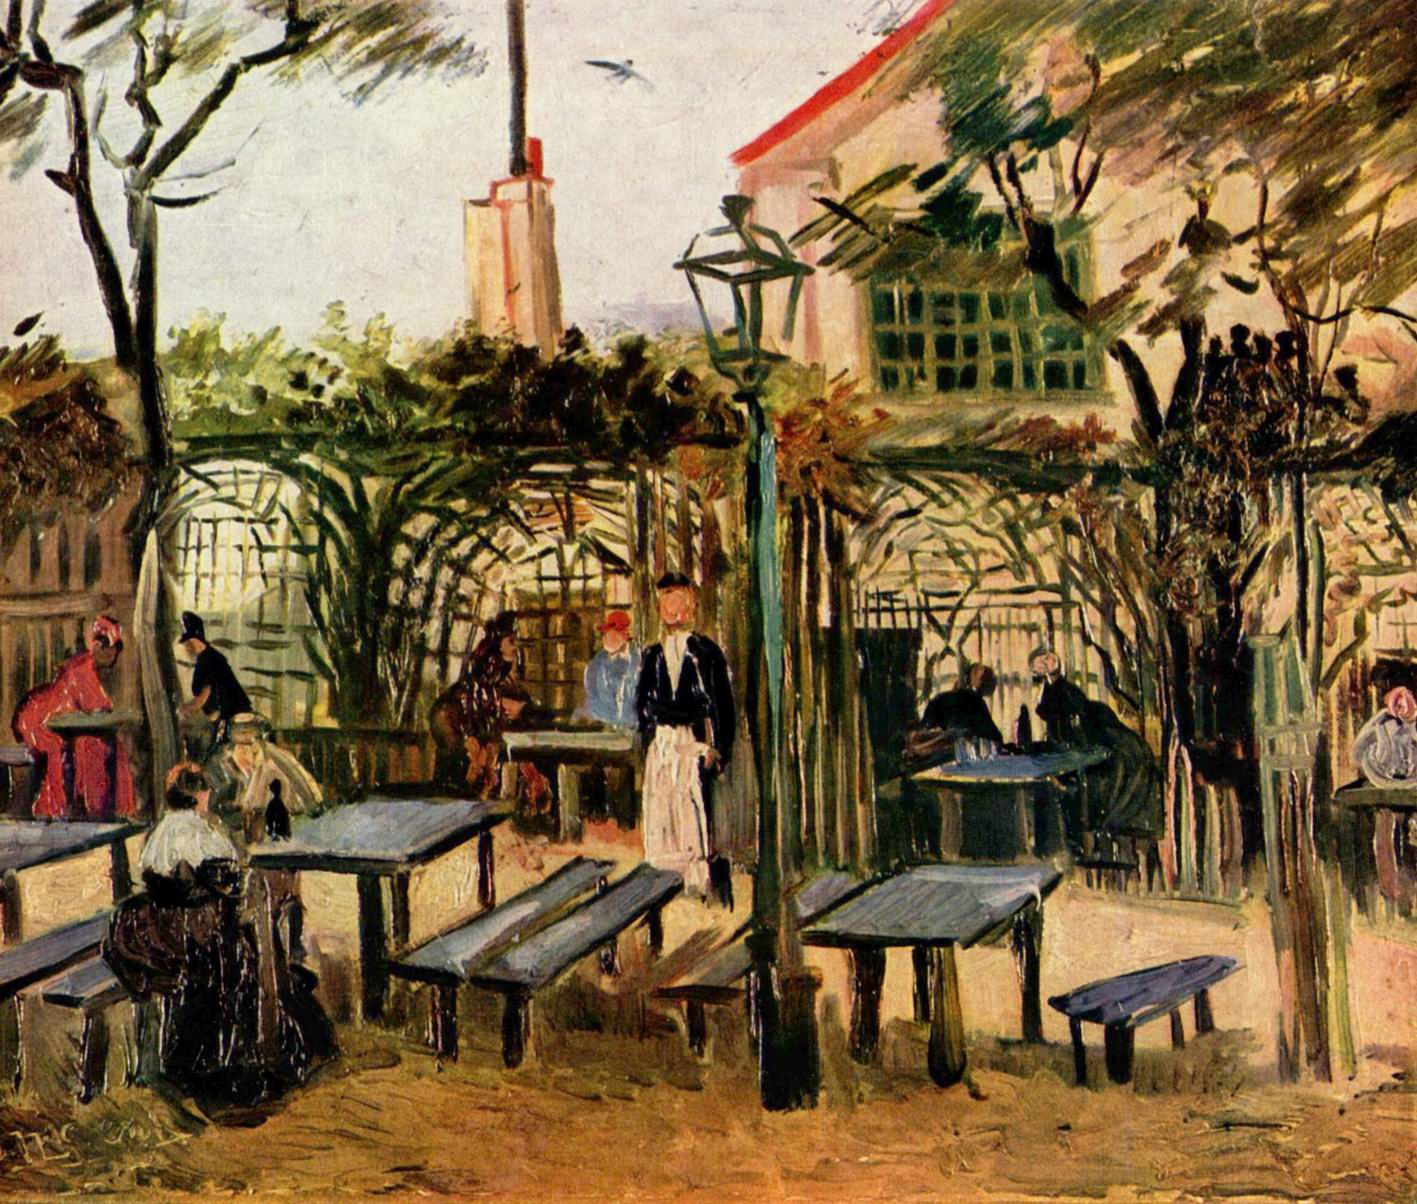 van gogh in paris essay Free essay: vincent van gogh was a dutch post-impressionist painter, whose work represents the archetype of expressionism, the idea of emotional spontaneity.